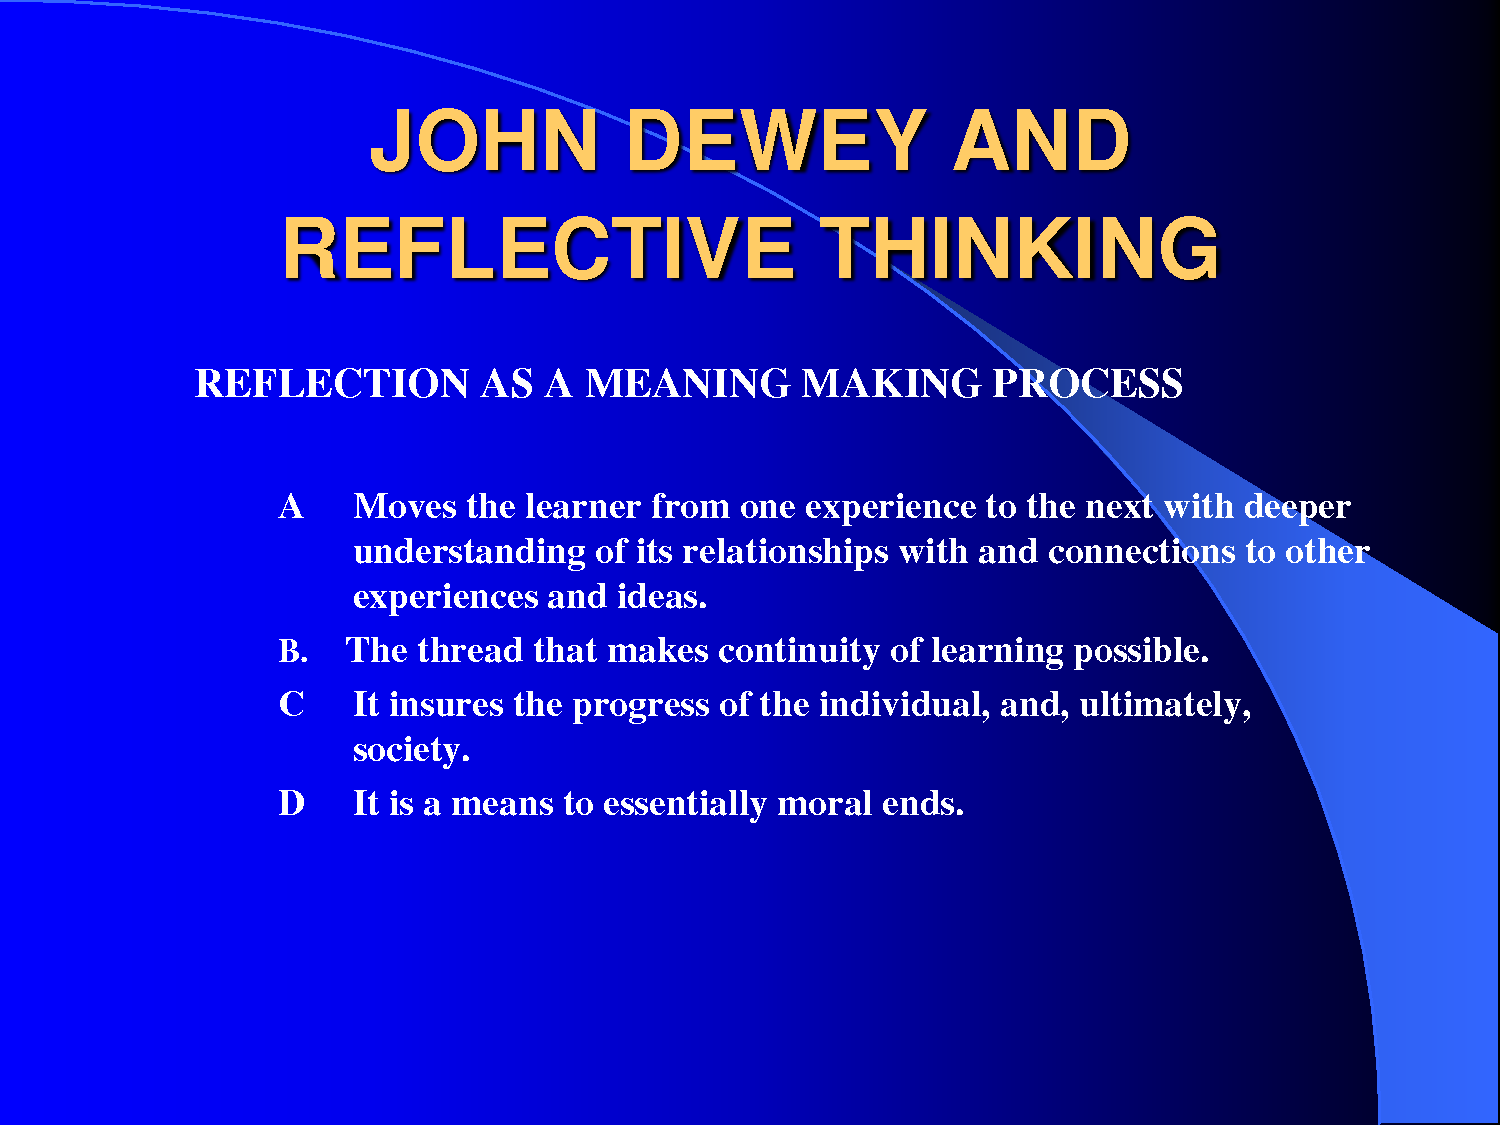 reflective thinking essay This is a presentation explaining the process of writing reflective essays it includes structuring the essay using a reflective model and suggestions for intr.